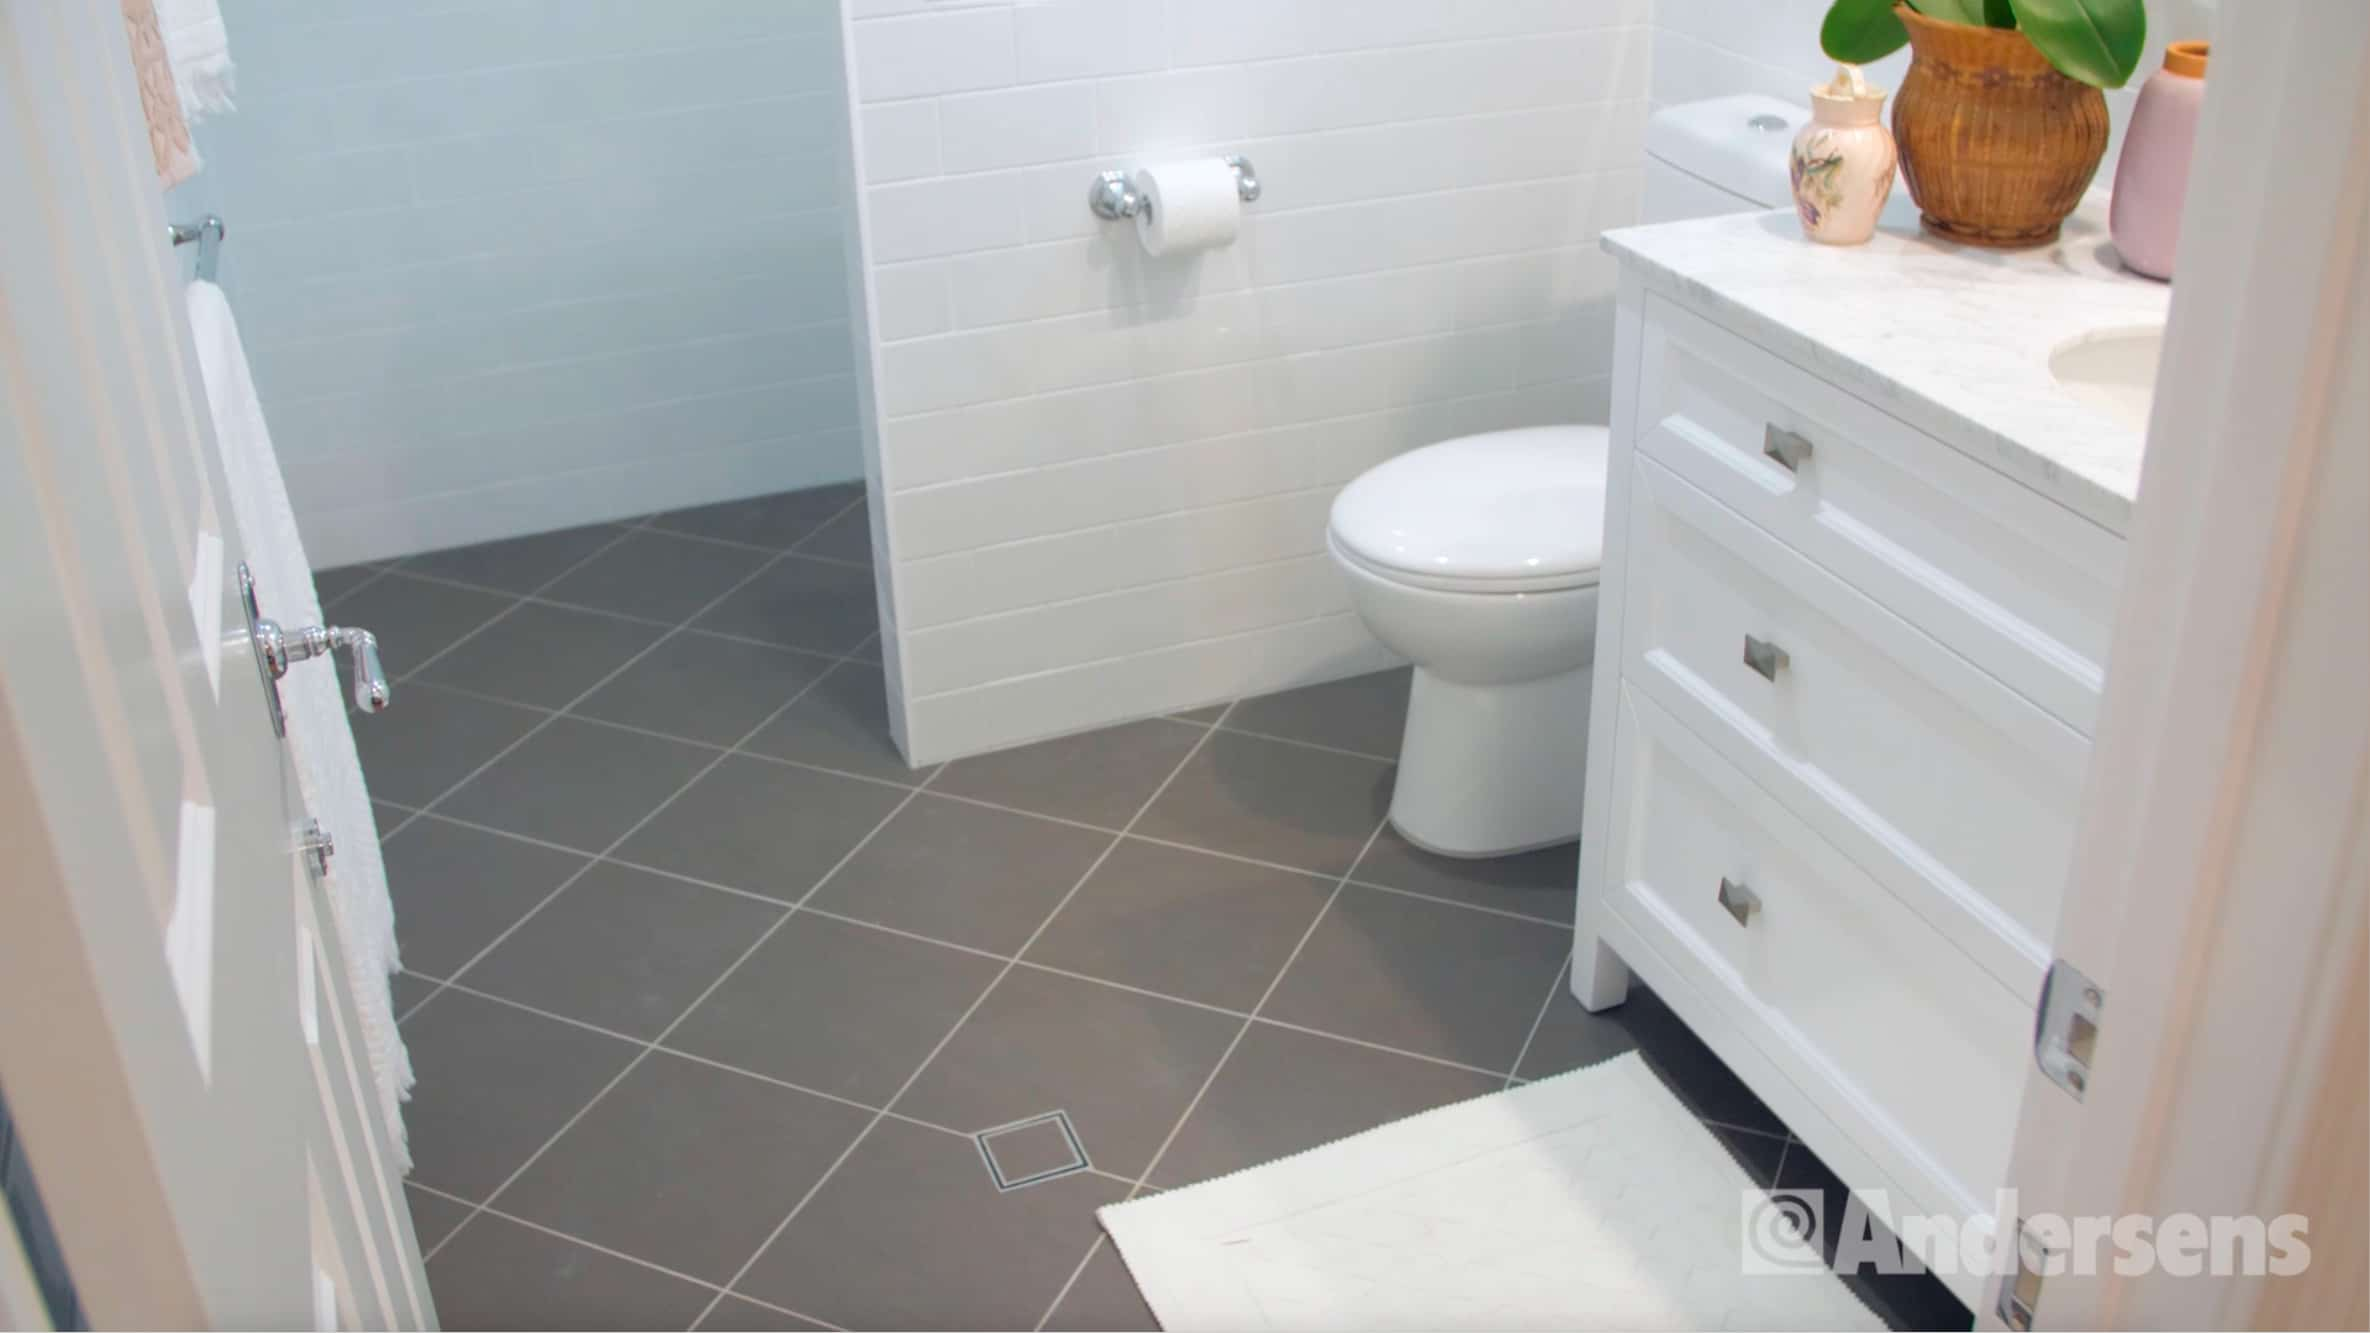 Grey tiled ensuite bathroom floor